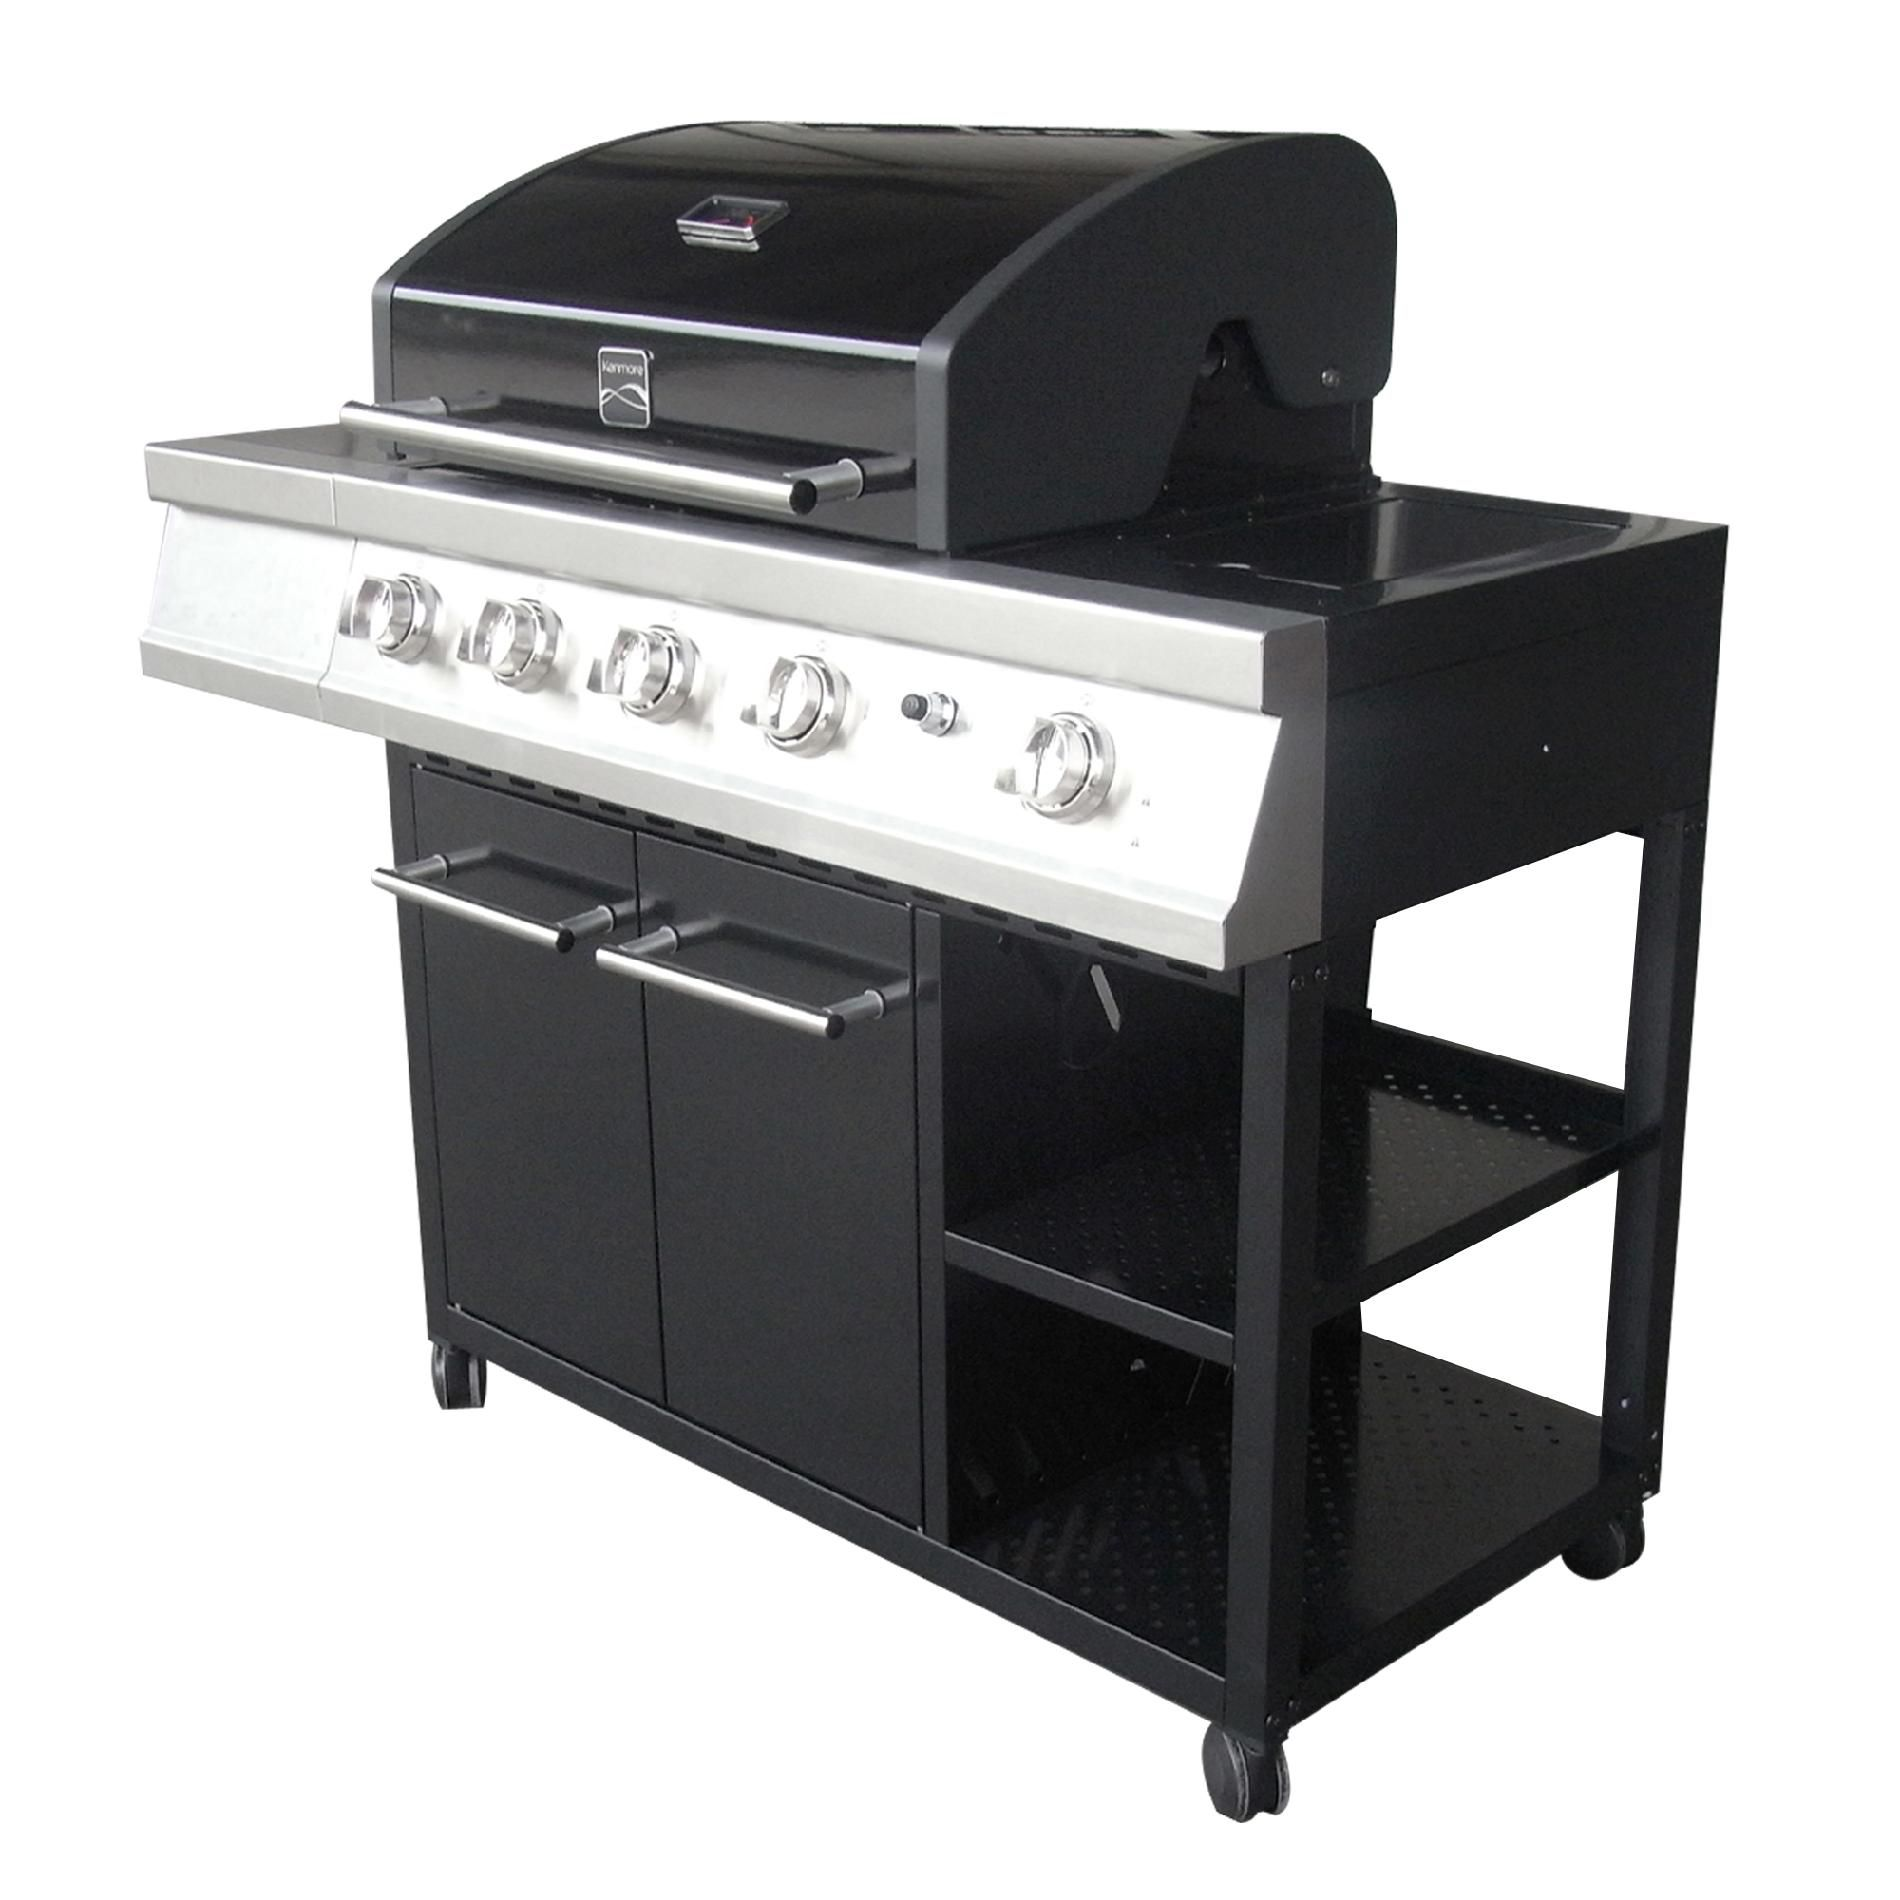 Kenmore 4-Burner Gas Grill with Open Storage